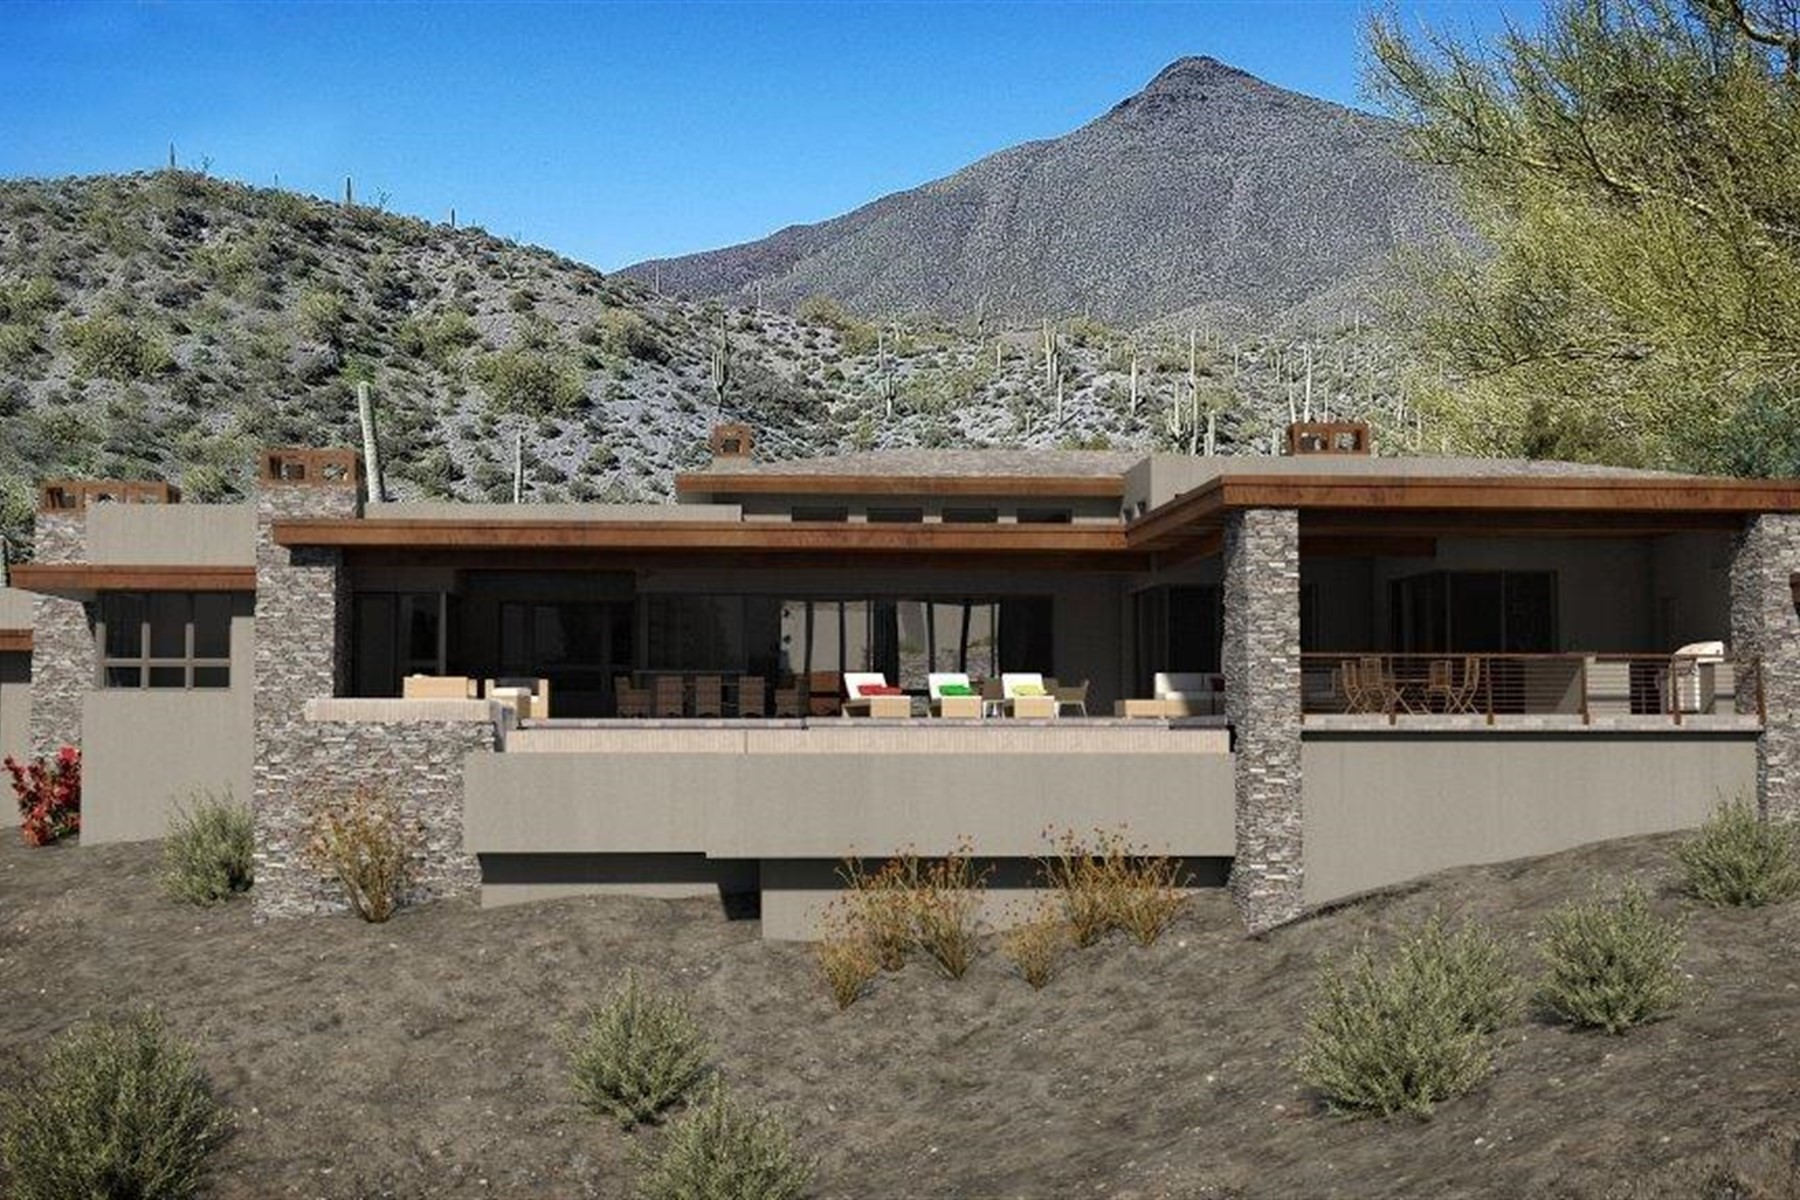 Single Family Home for Sale at Desert Mountain's prestigious Saguaro Forest 42382 N Chiricahua Pass, Scottsdale, Arizona, 85262 United States